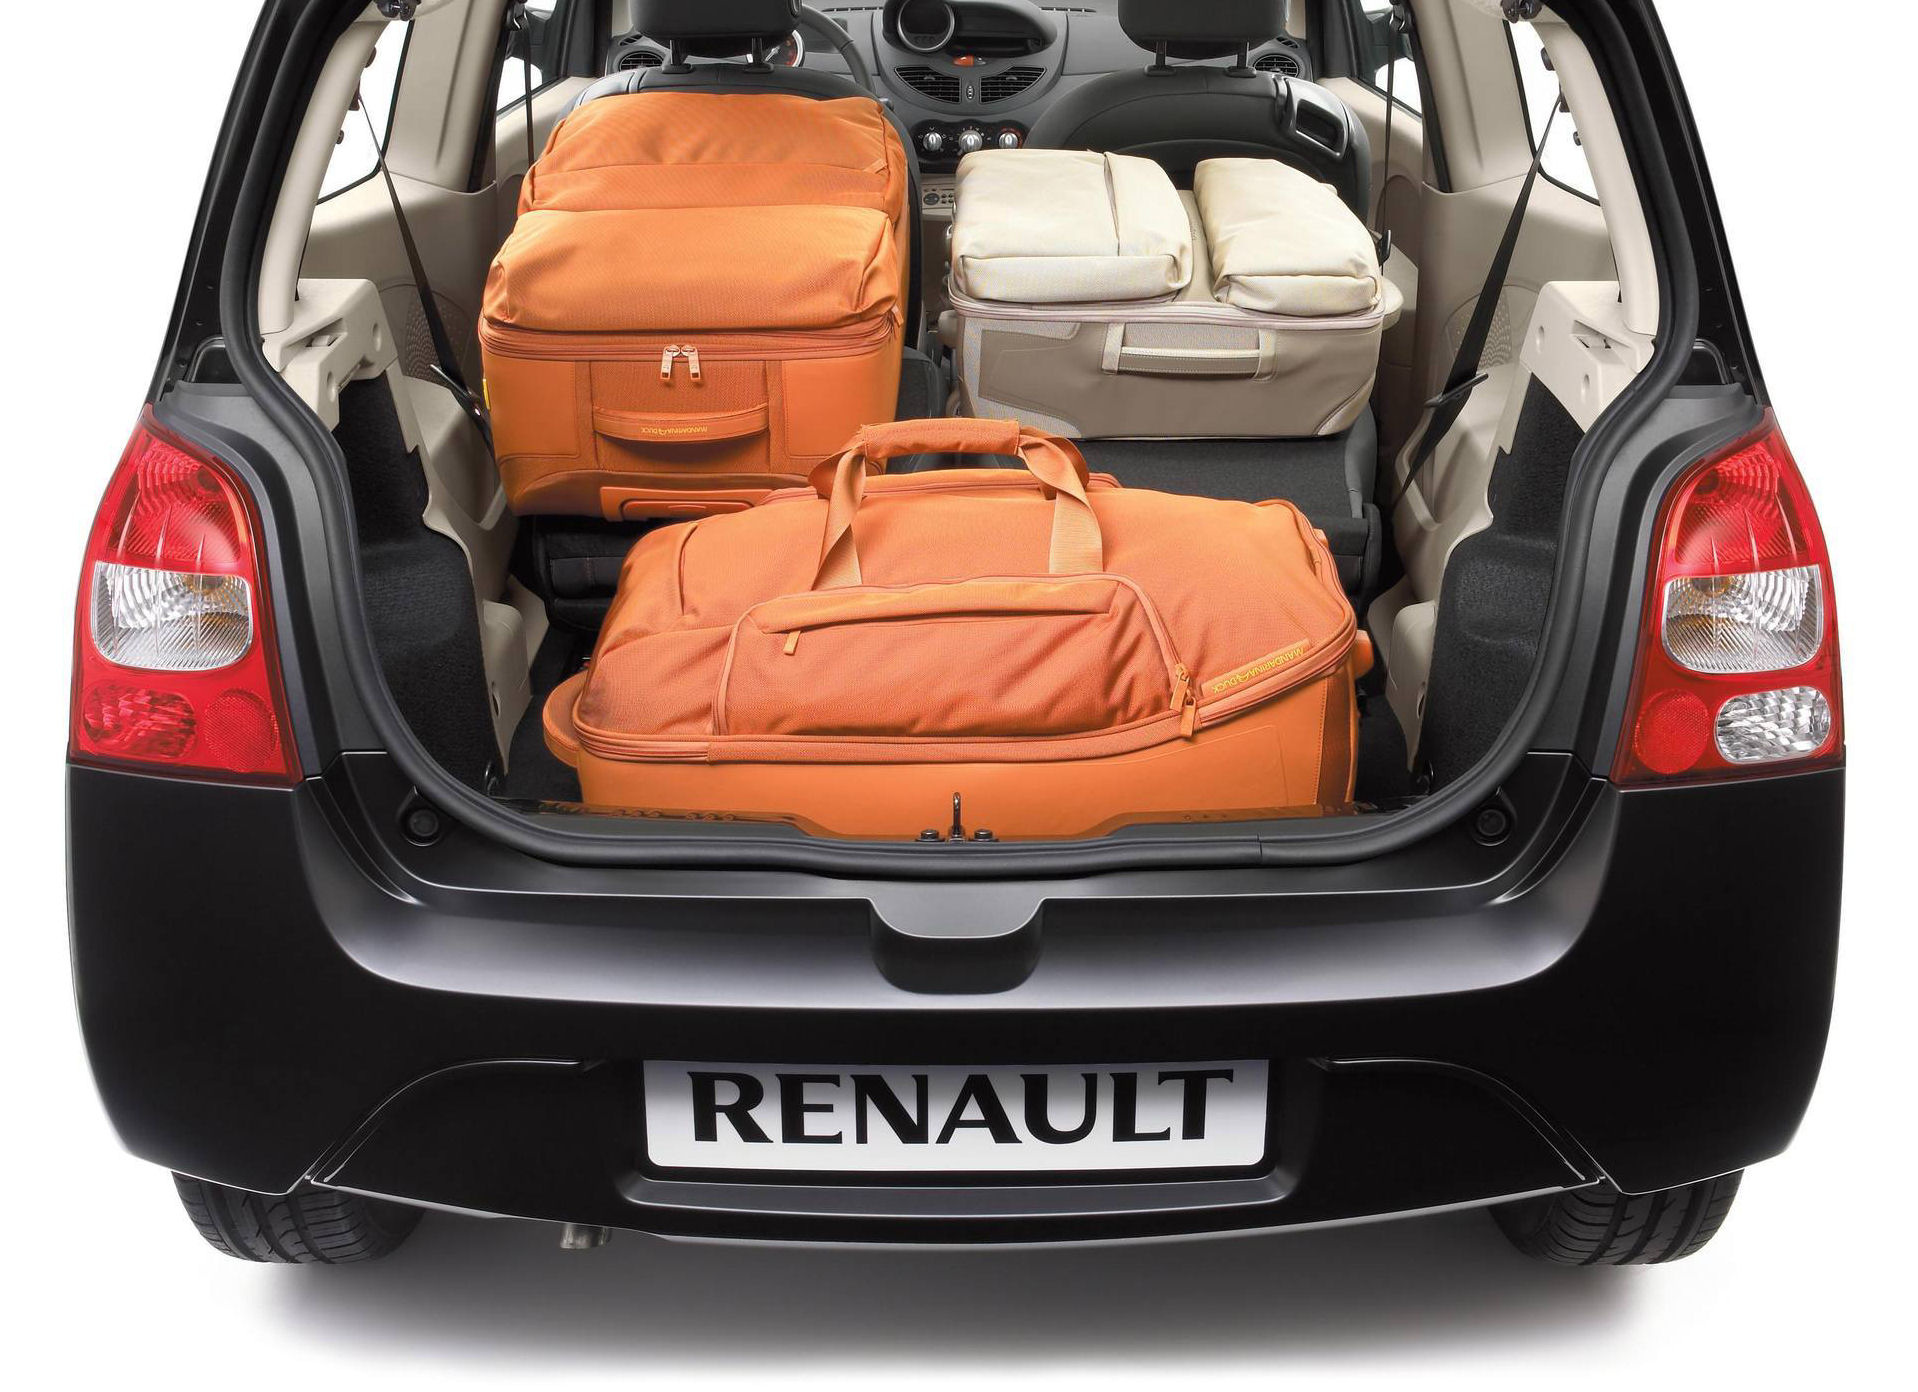 renault club renault twingo. Black Bedroom Furniture Sets. Home Design Ideas